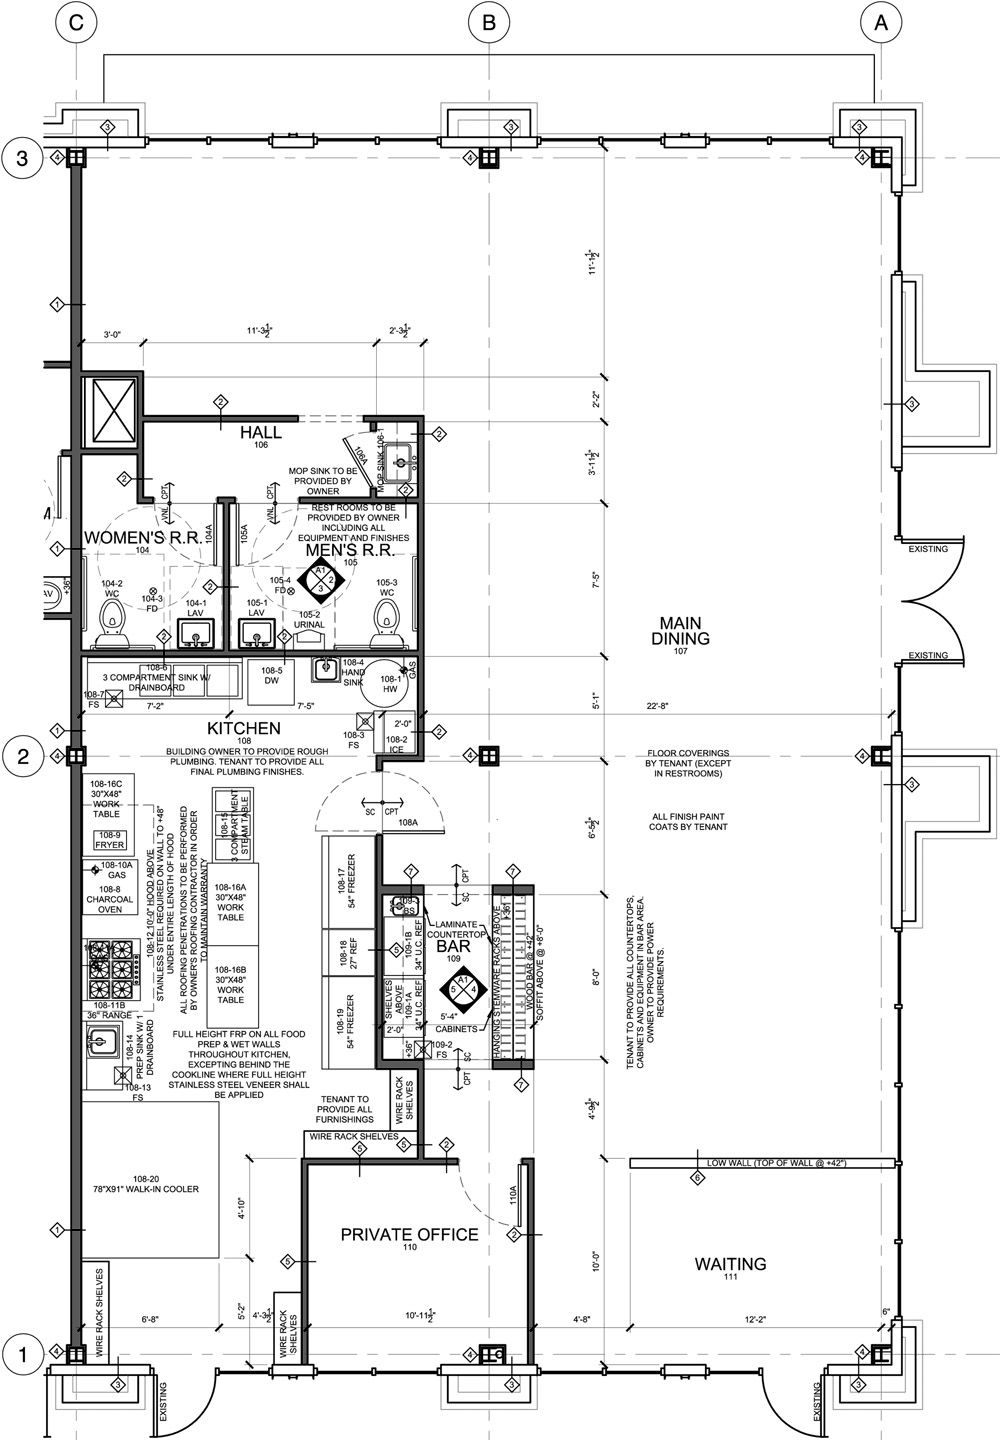 Restaurant Kitchen Layout Dimensions designing a restaurant floor plan | home design and decor reviews